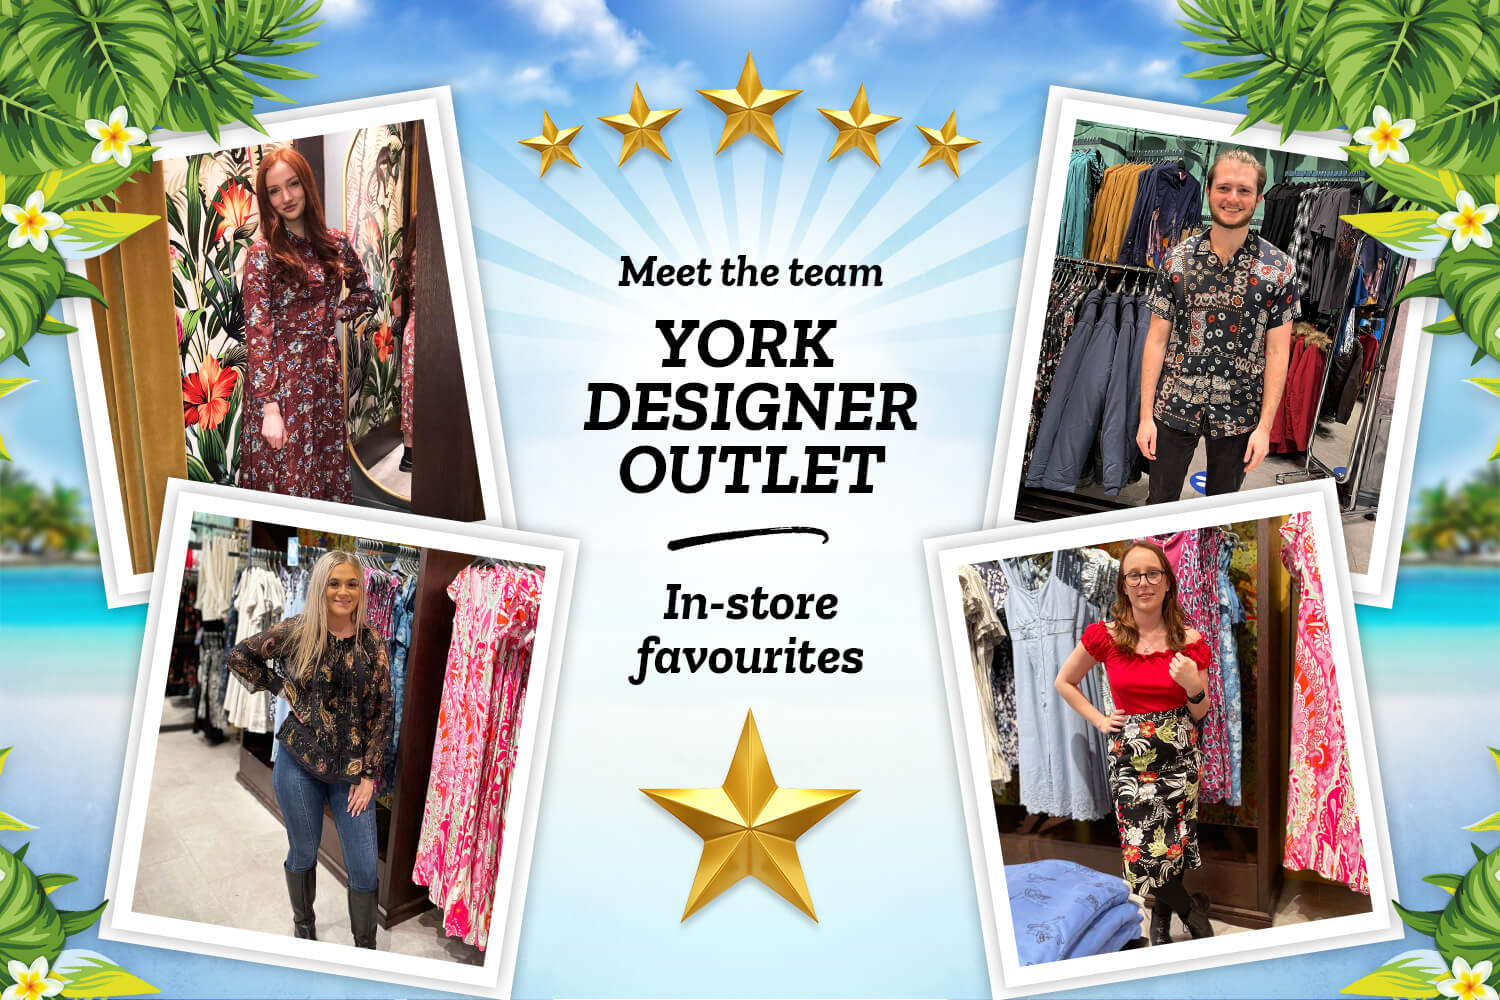 Meet The York Designer Outlet Team: In-store Favourites